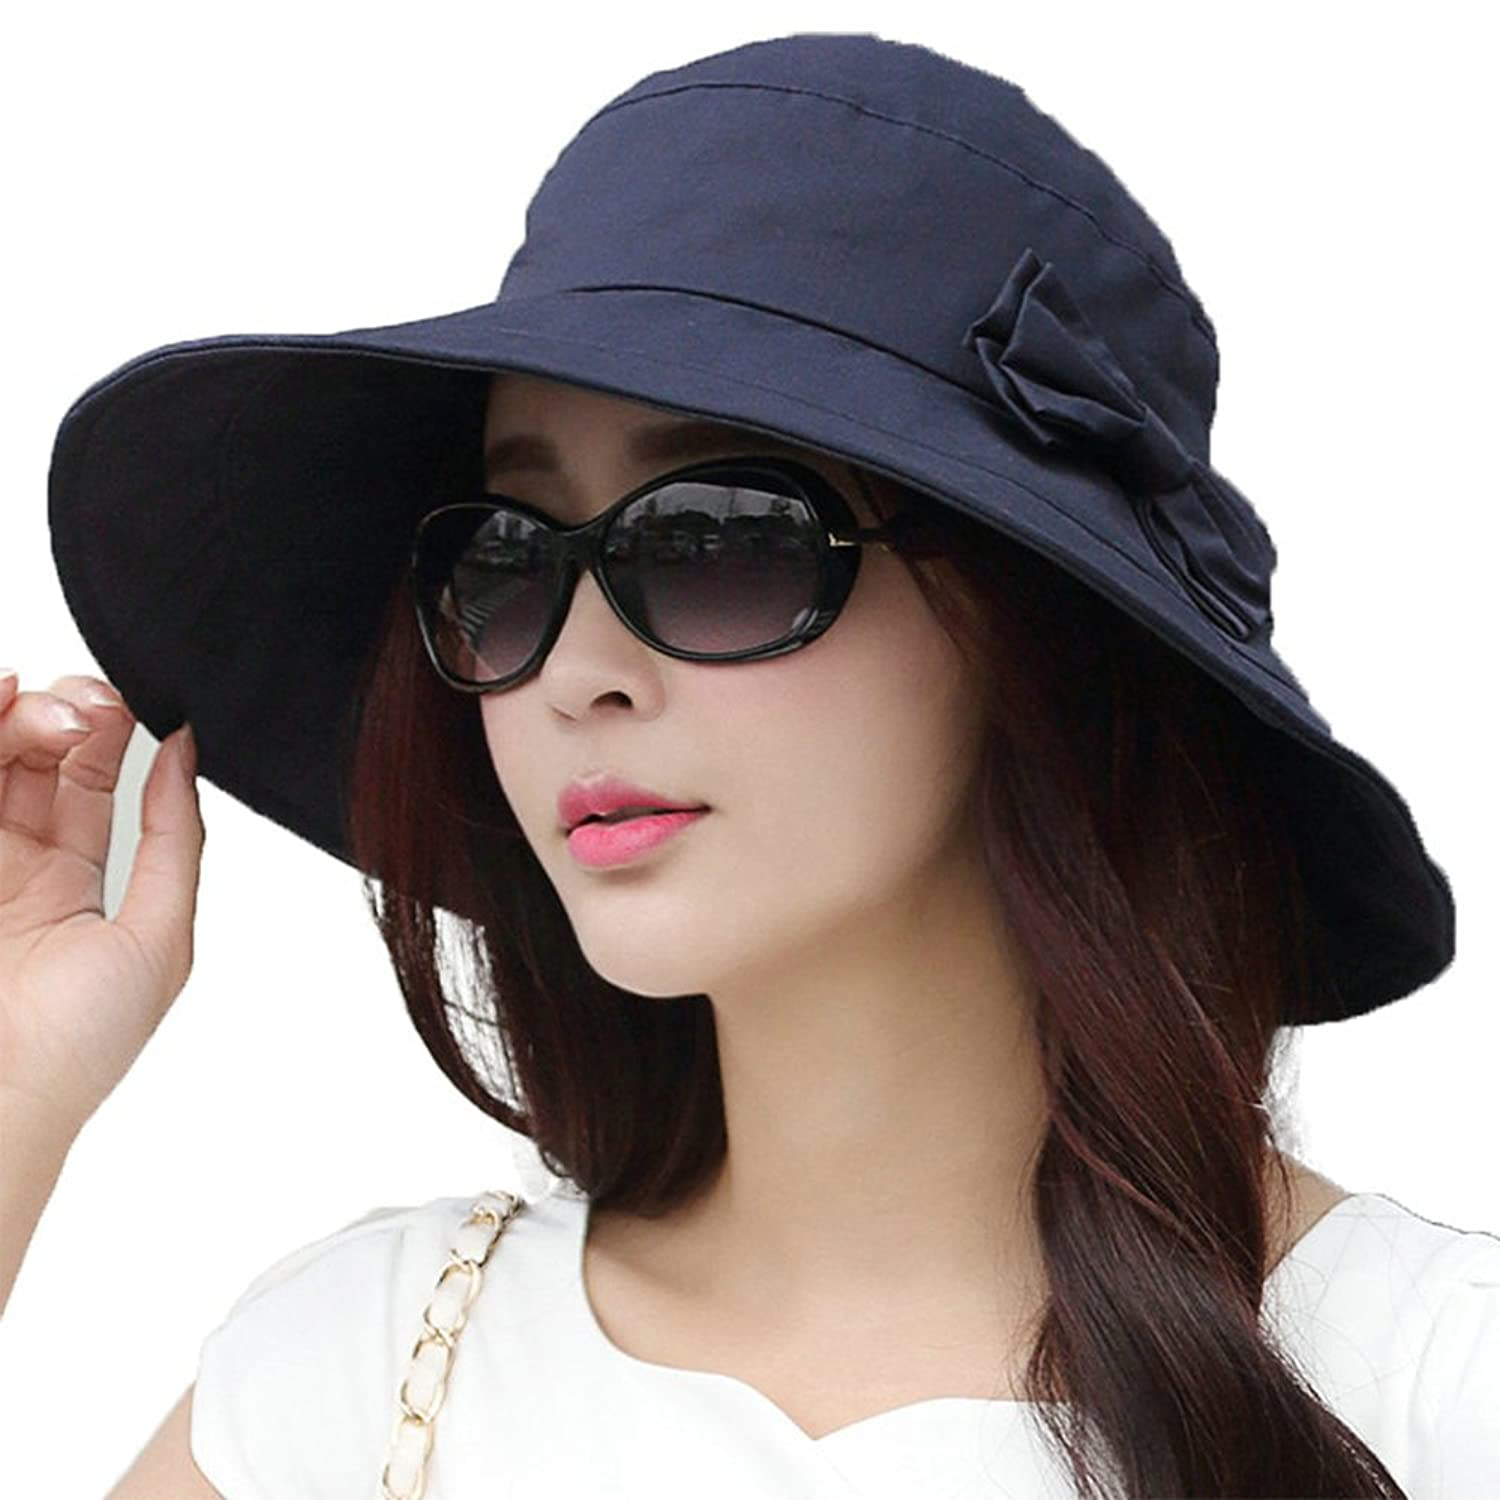 02733b2b Siggi Bucket Boonie Cord Fishing Beach Cap Summer Sun Hat Wide Brim for  Women UPF50+